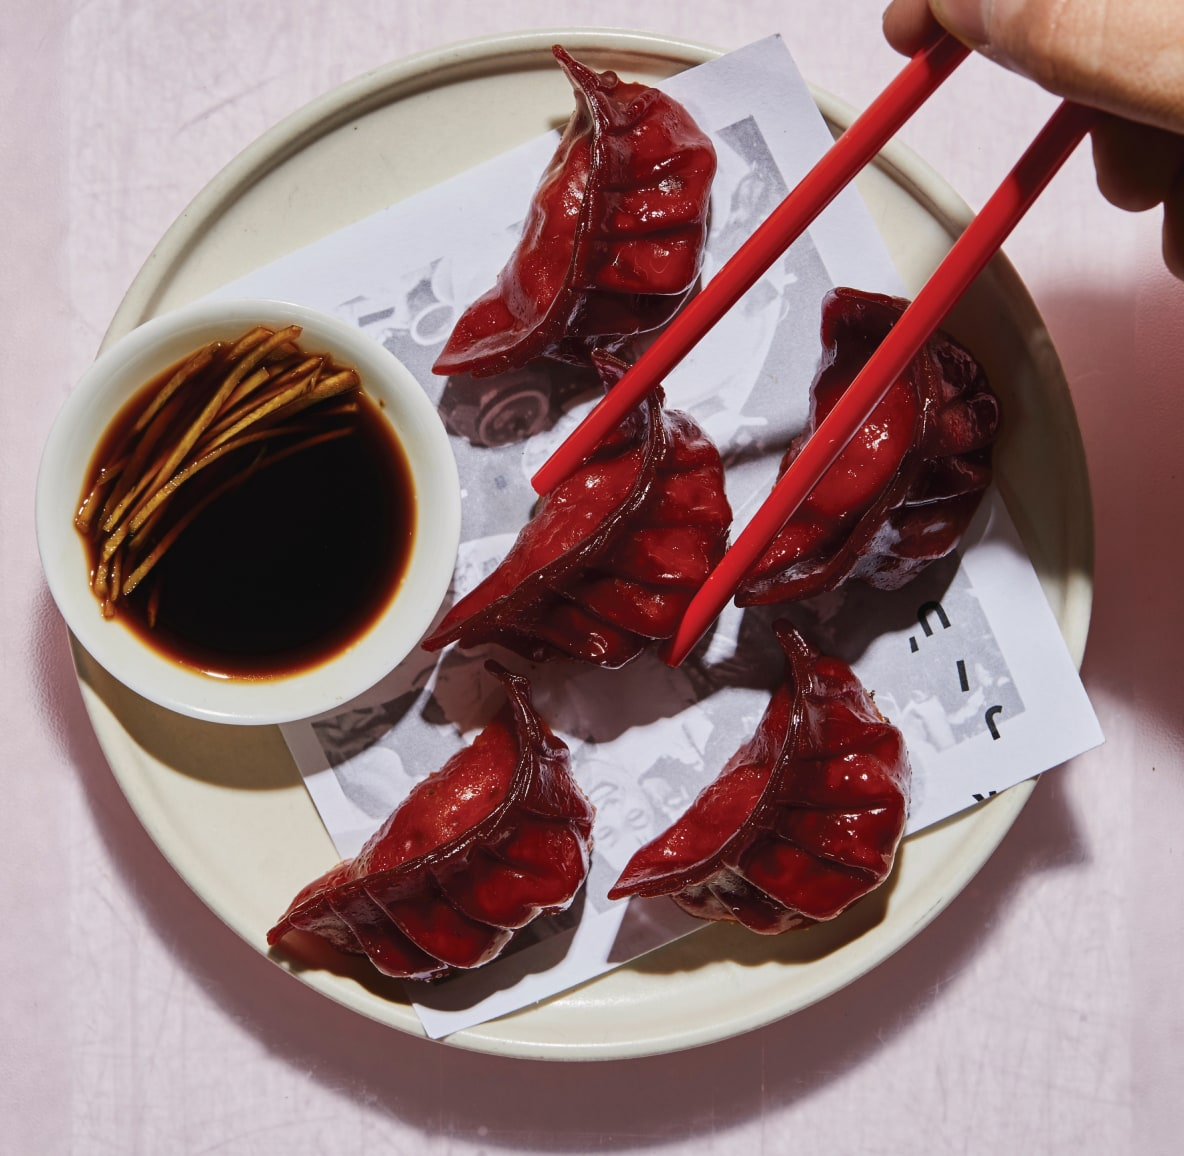 A plate of artisanal red potstickers with a side dipping sauce